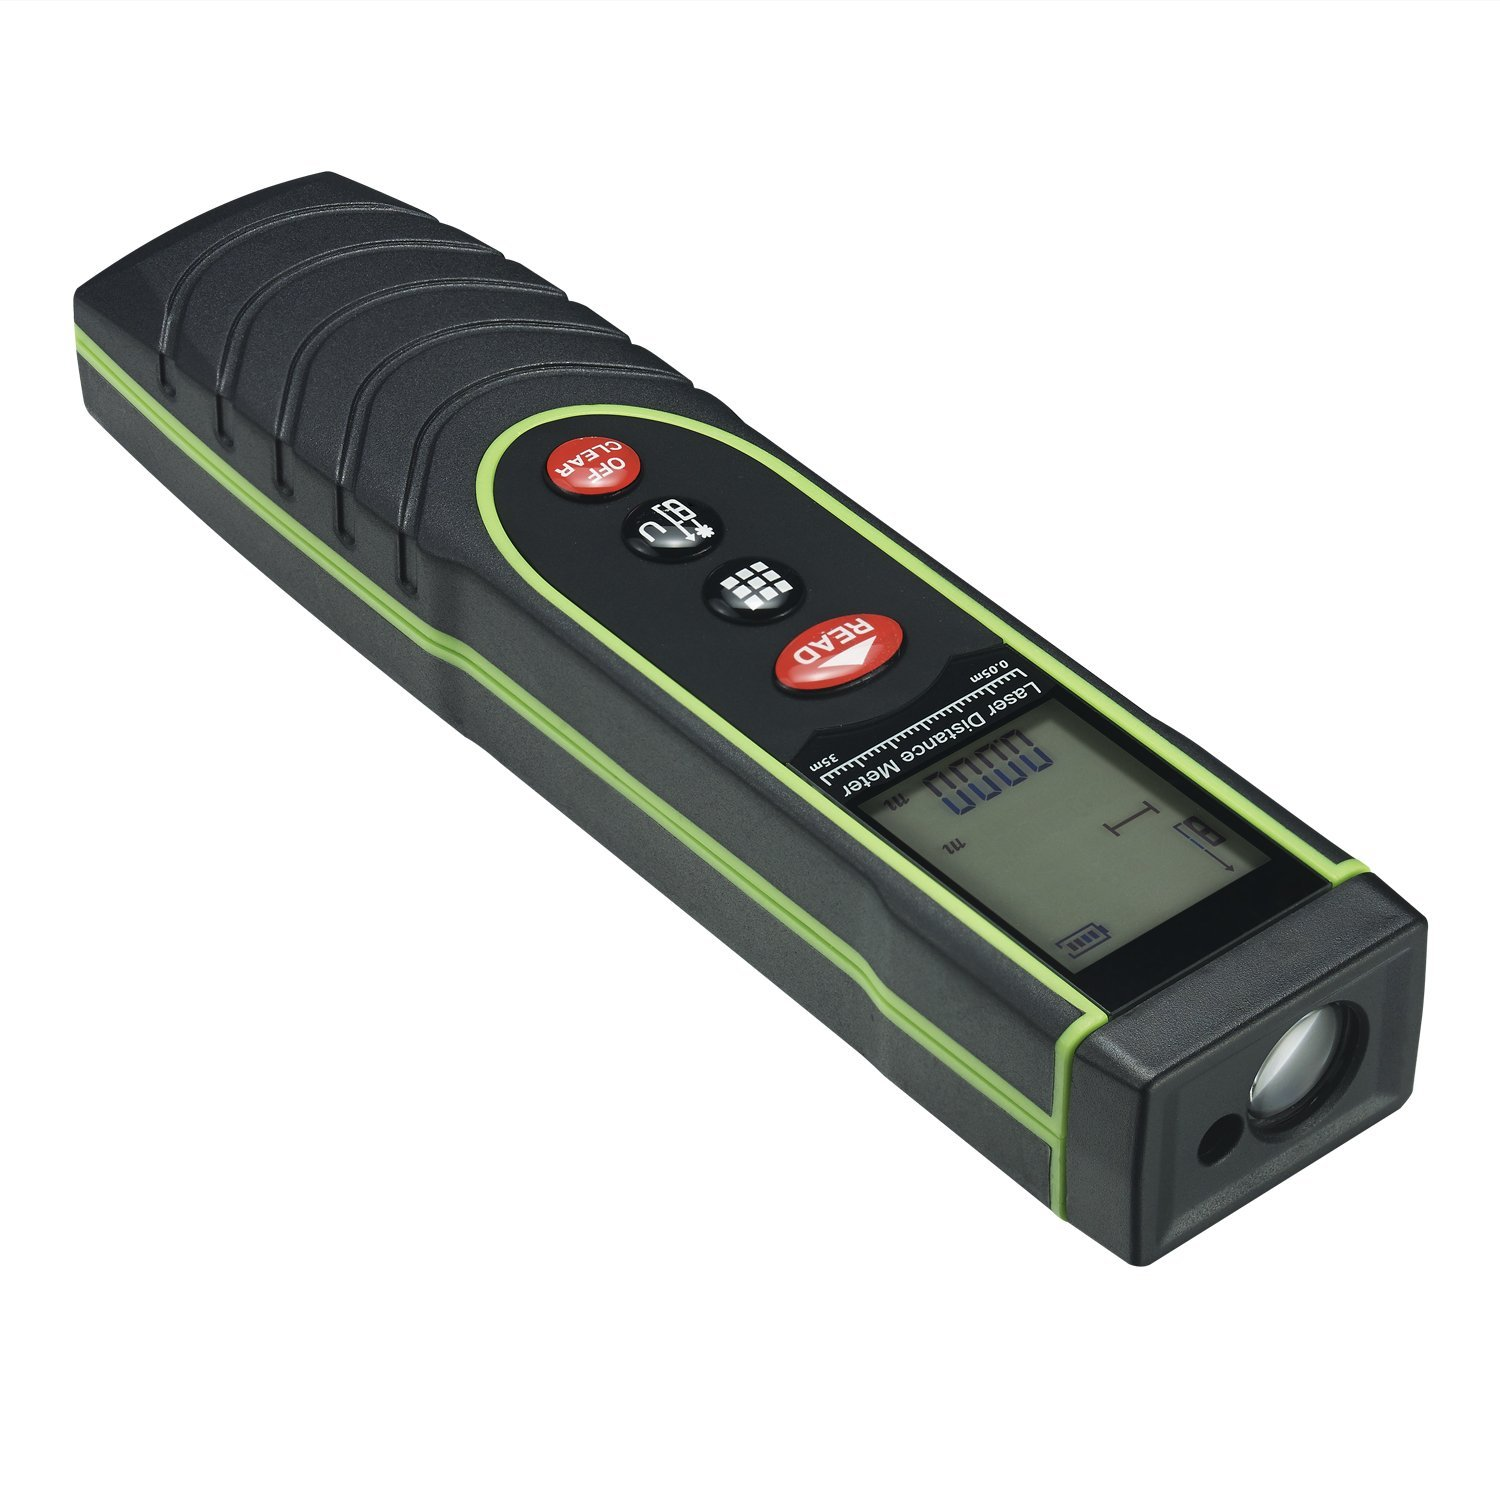 Portable Hand-Held Digital Laser Distance Meter PT35